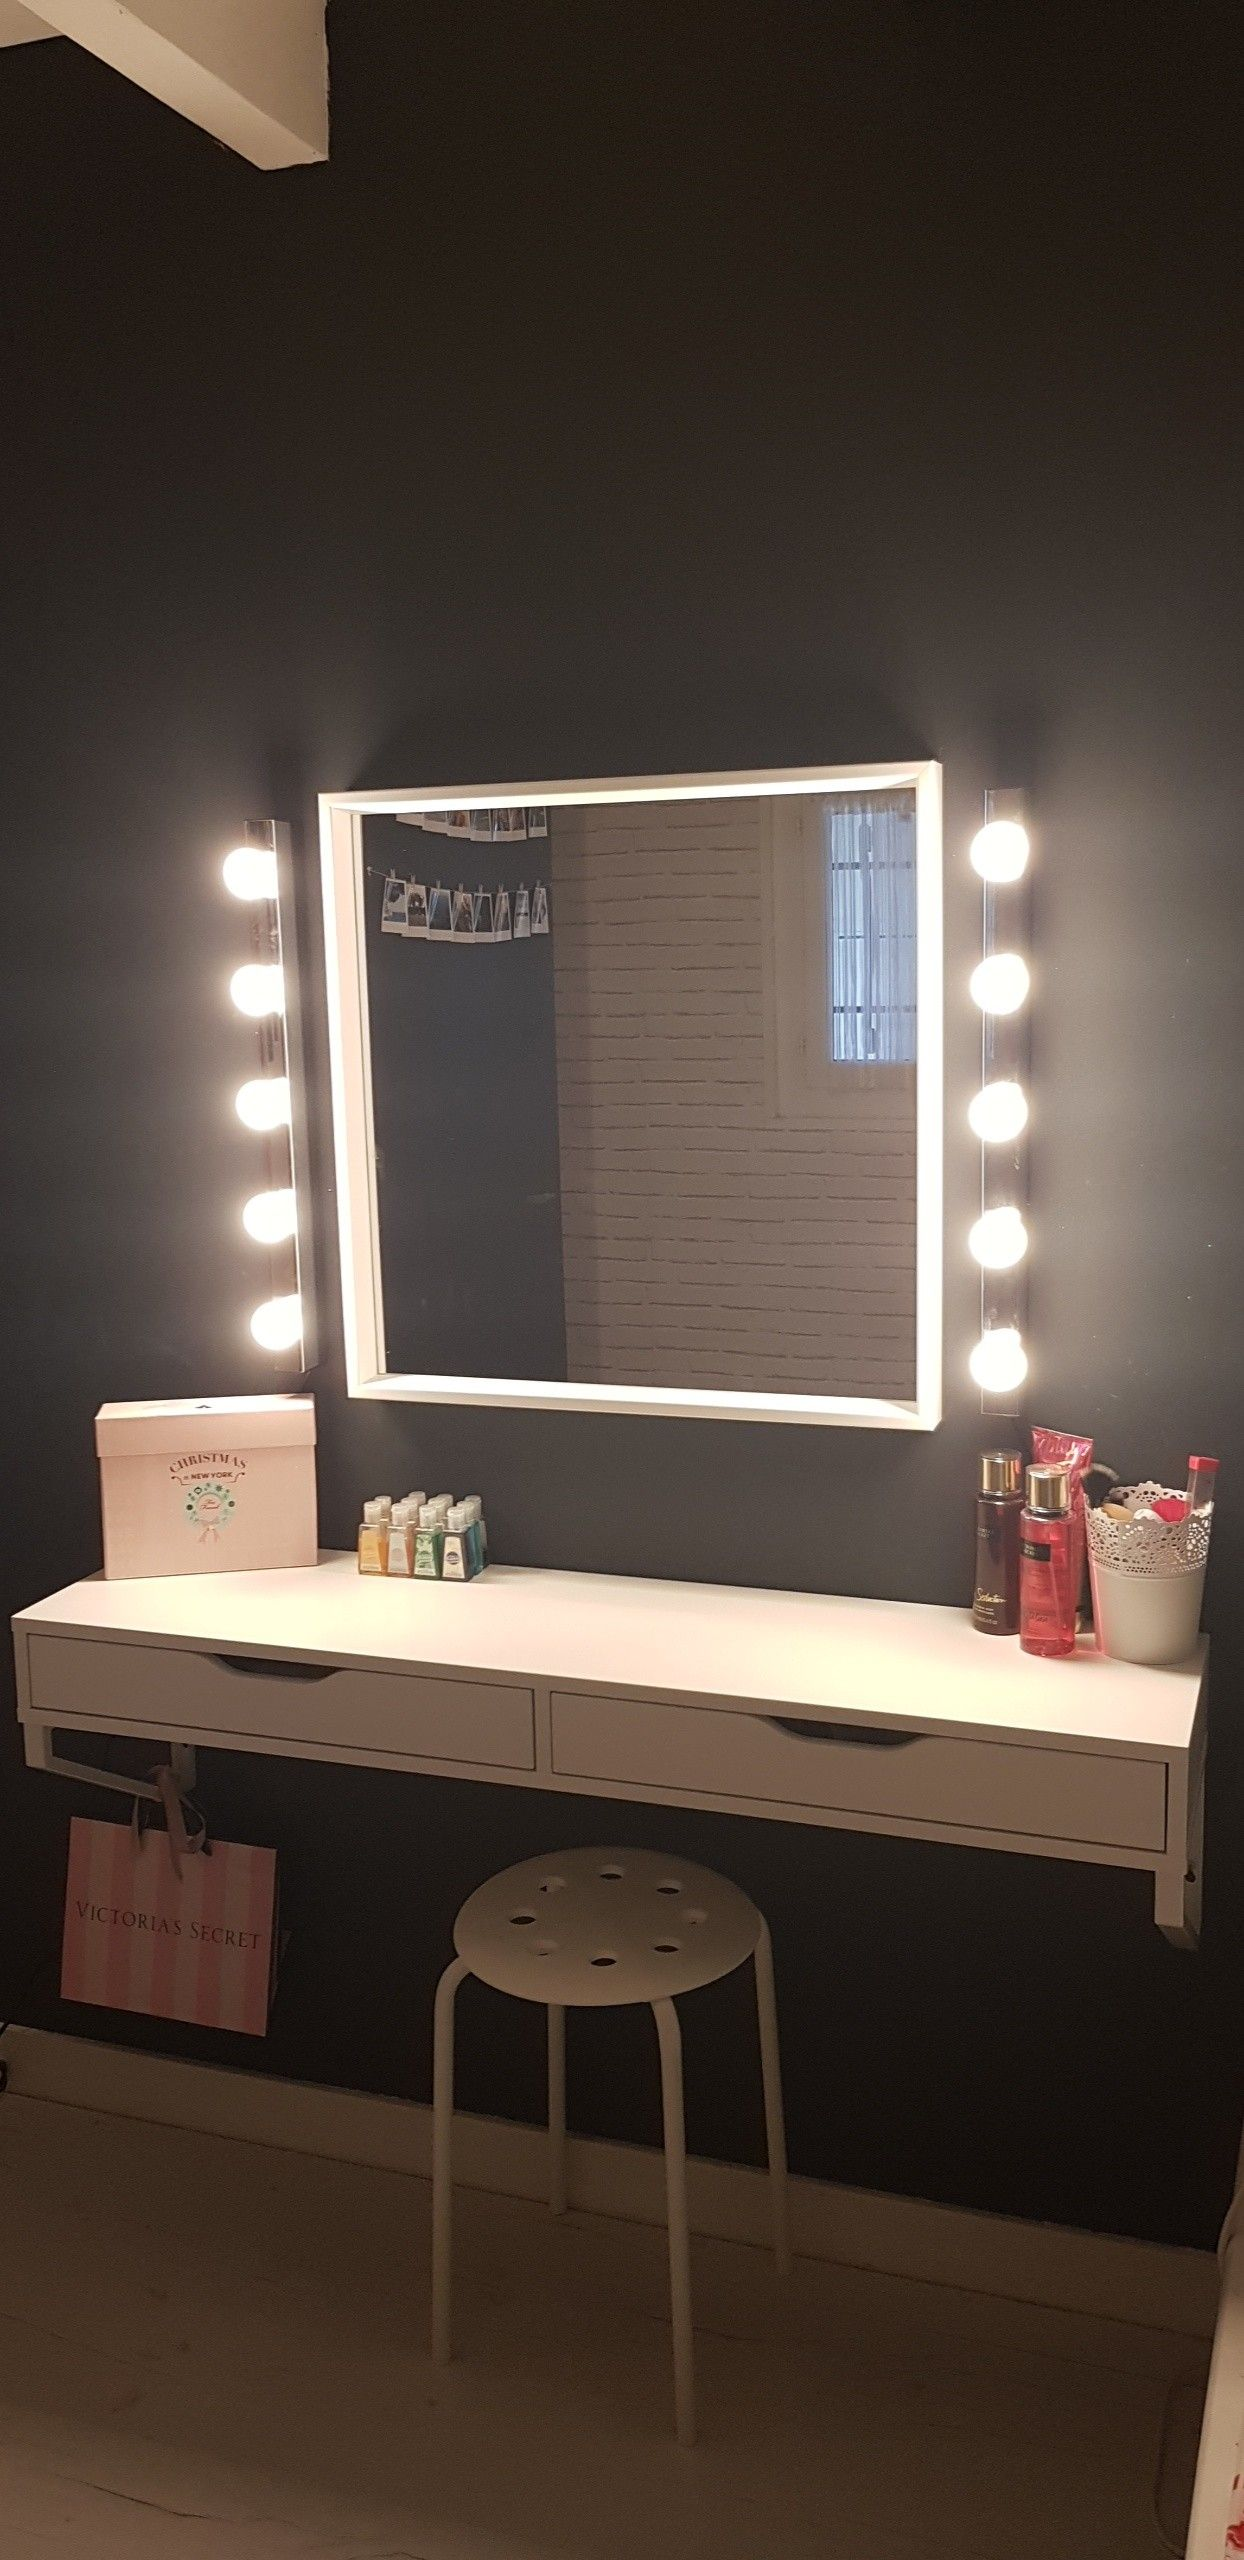 Coiffeuse #maquillage #ikea #makeup  Déco chambre ikea, Deco